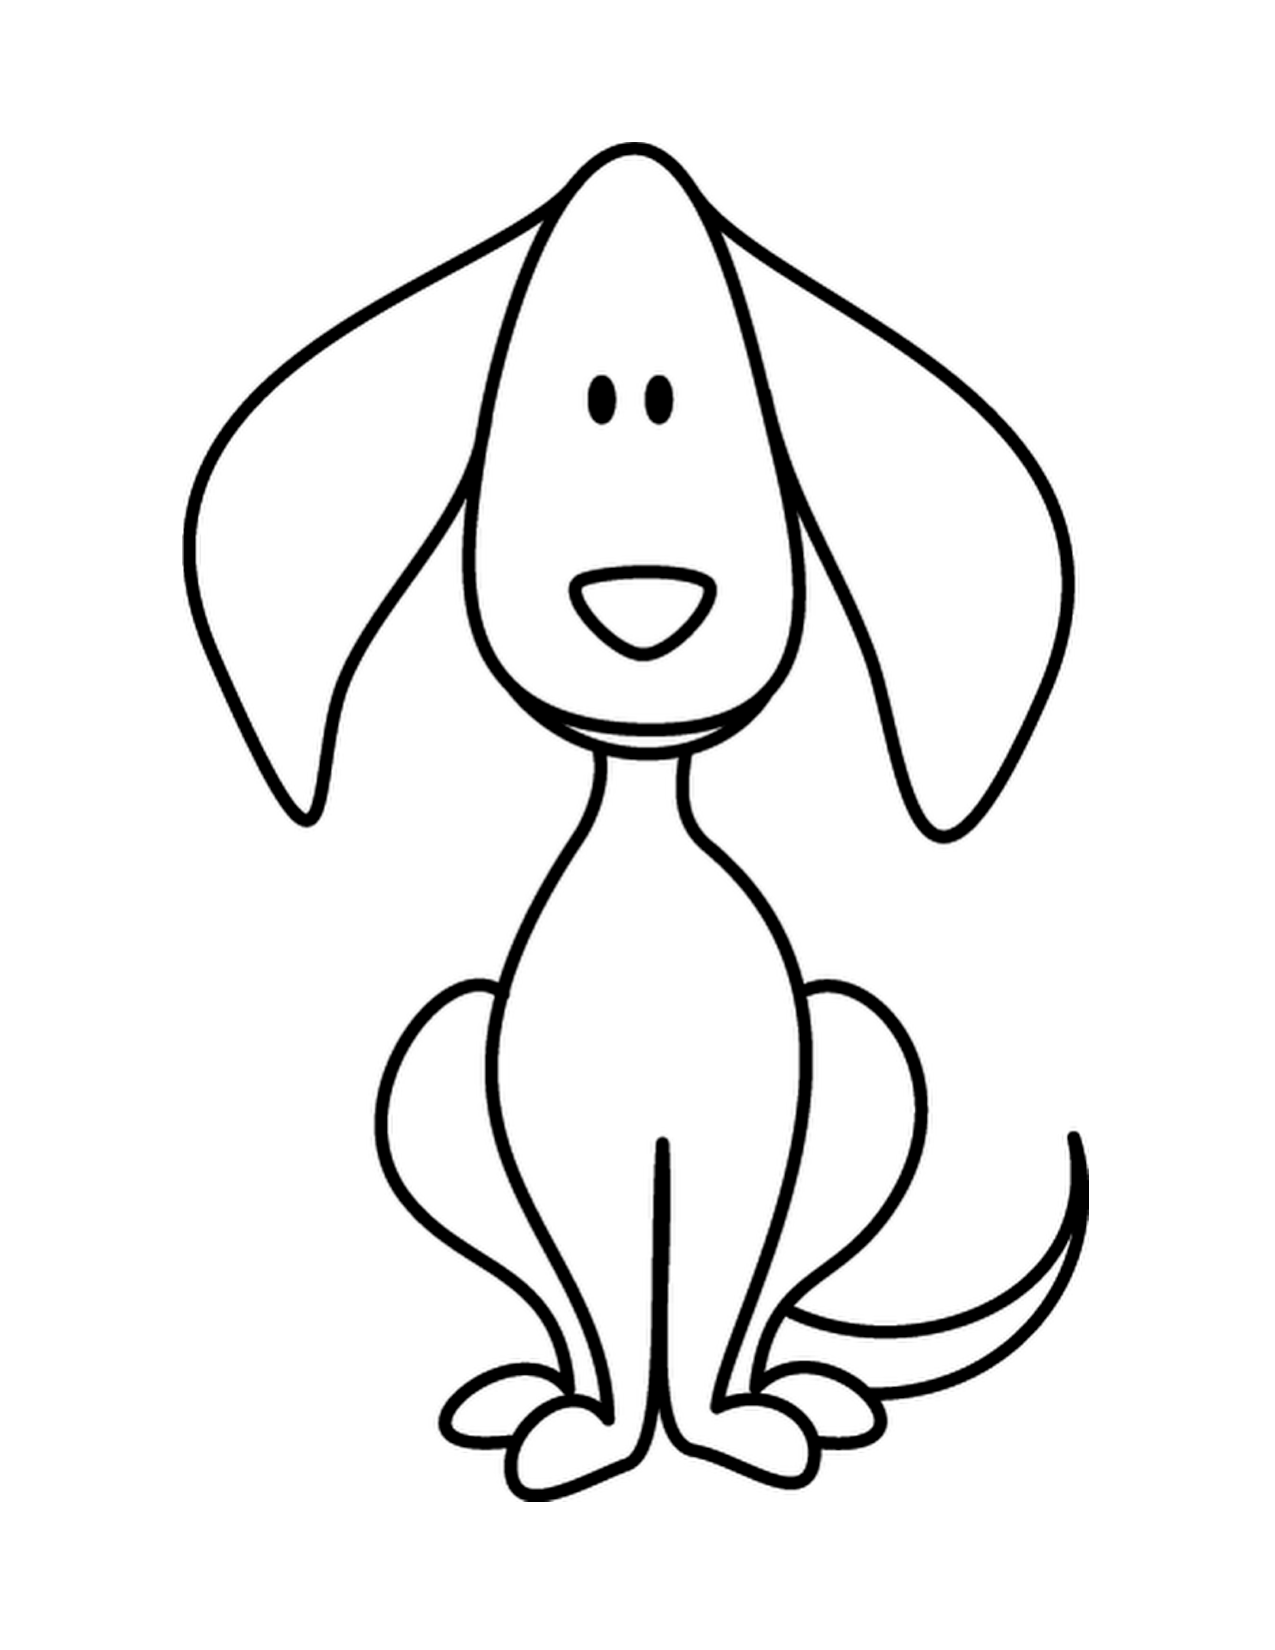 Simple Line Artwork : Simple line drawings for kids clipart best